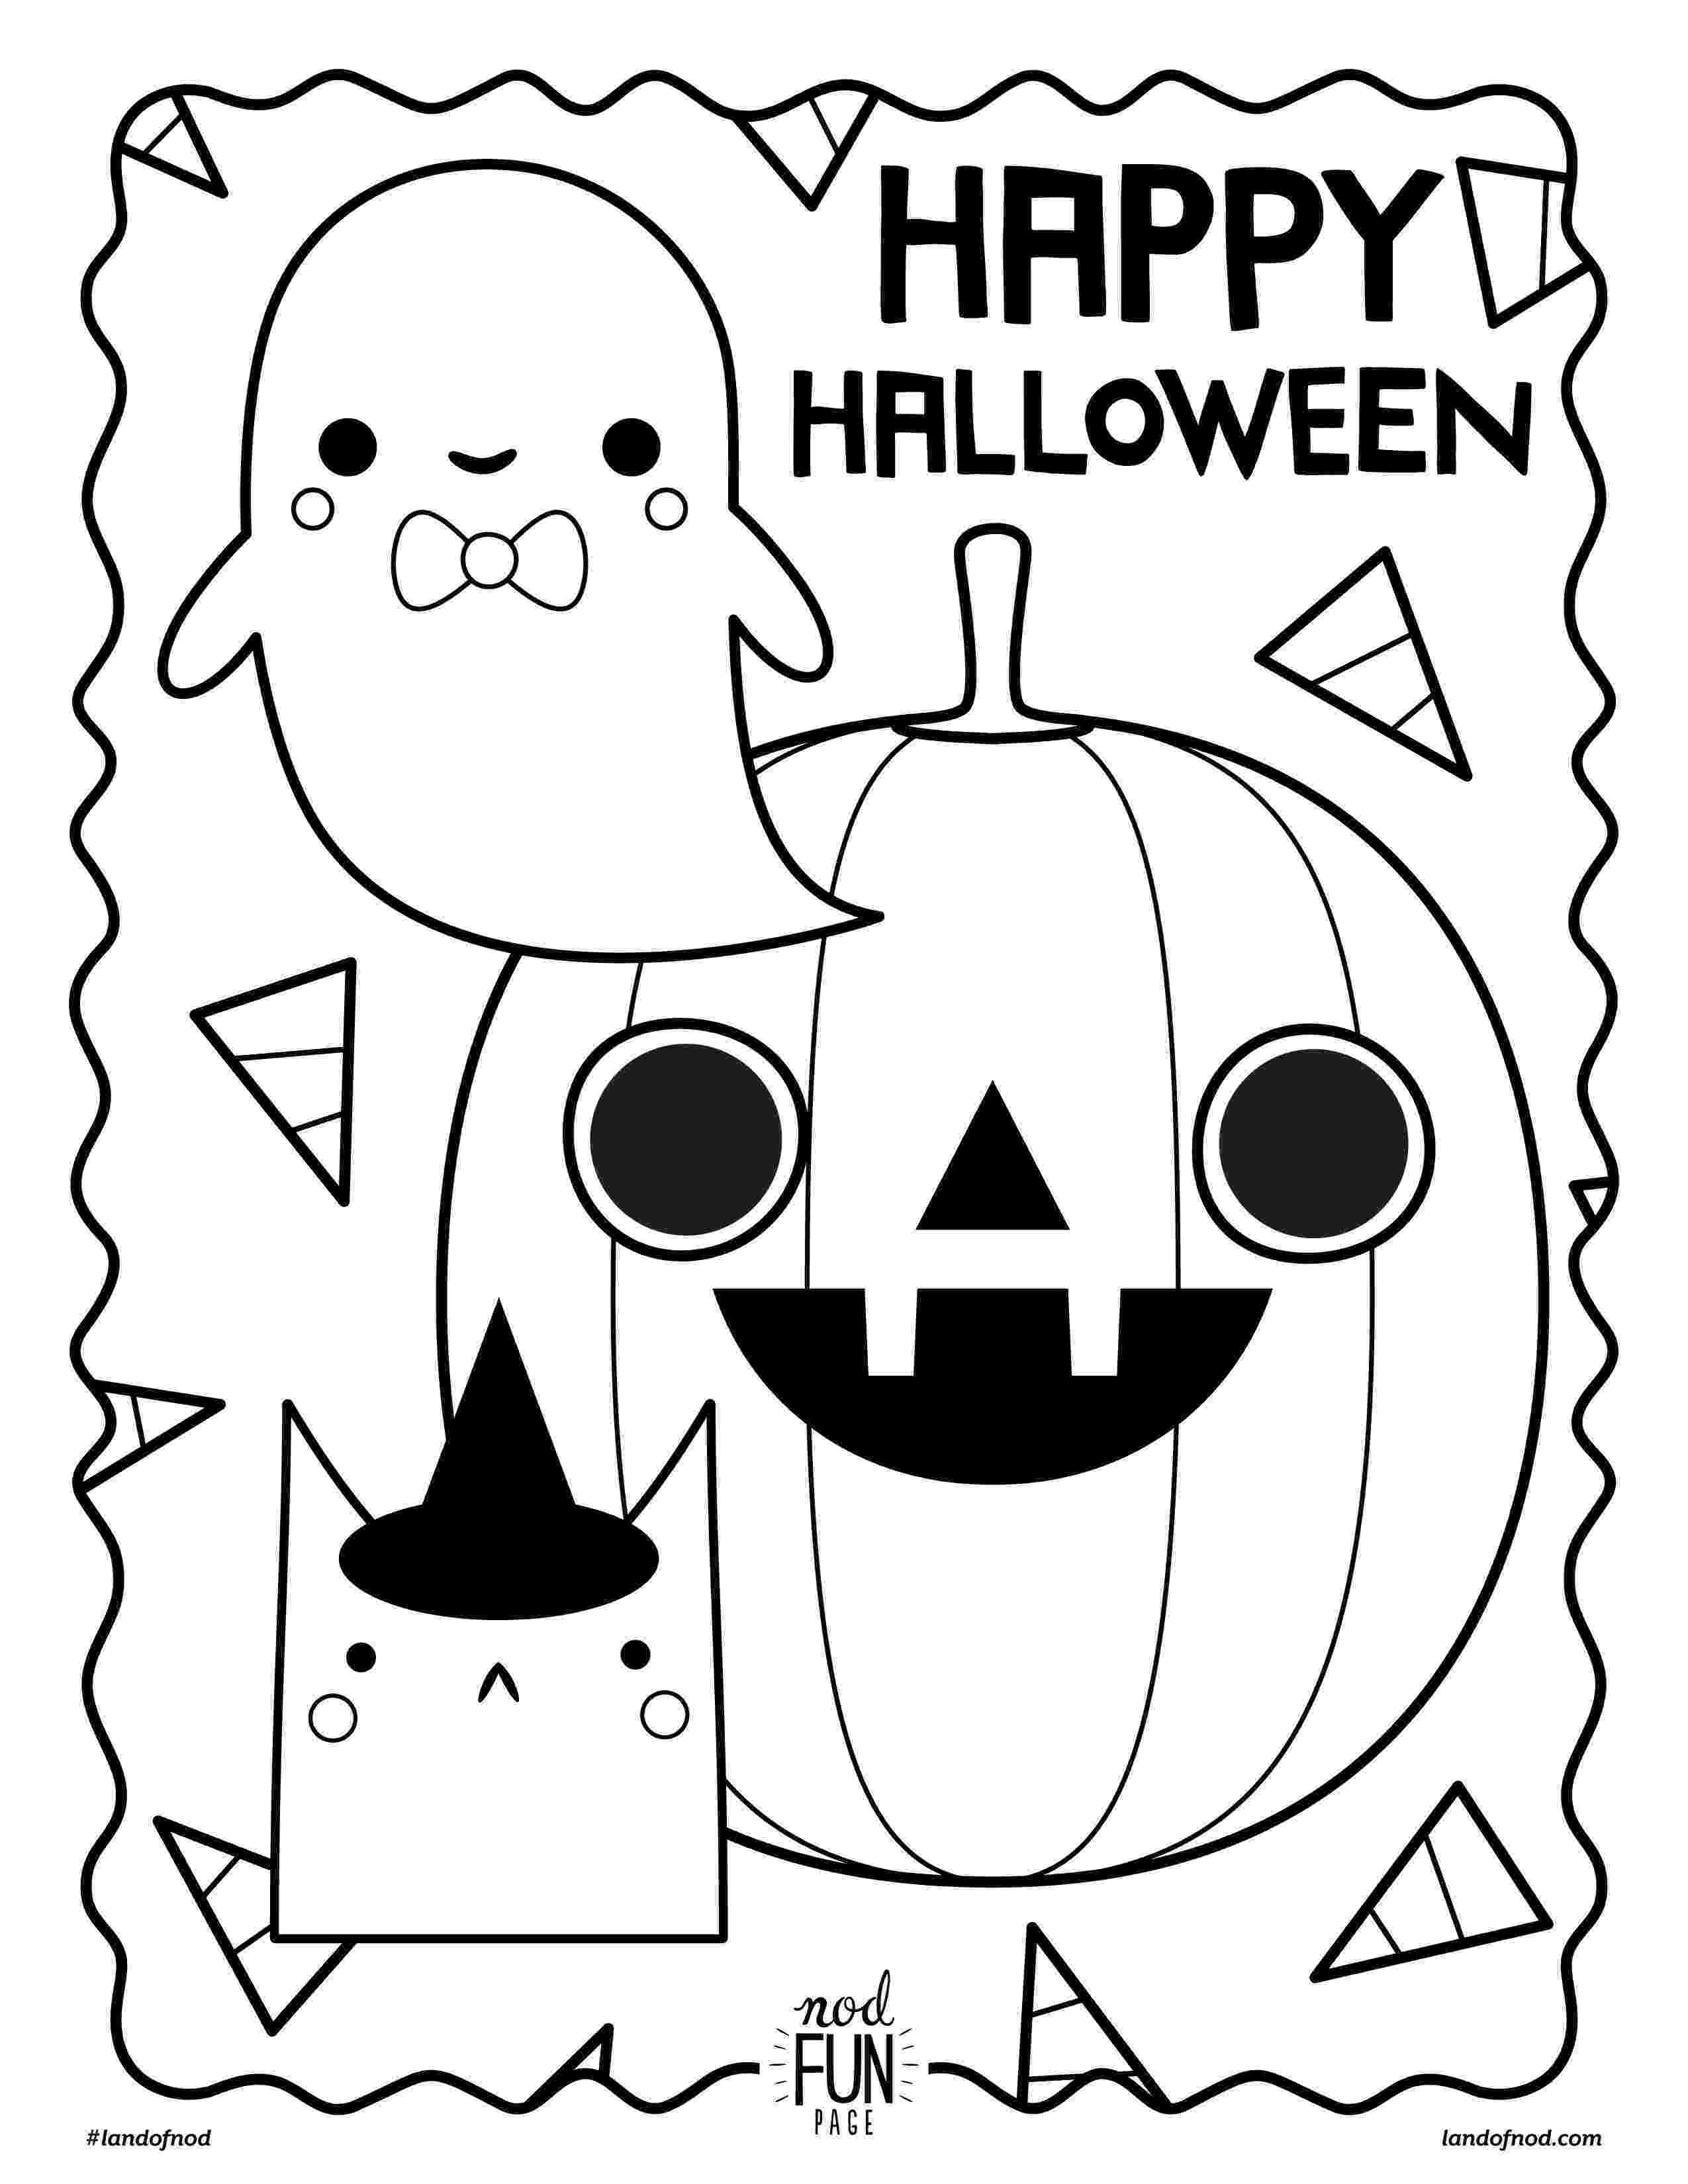 halloween coloring sheets for kindergarten free printable jack o lantern shapes coloring pages kindergarten coloring halloween sheets for